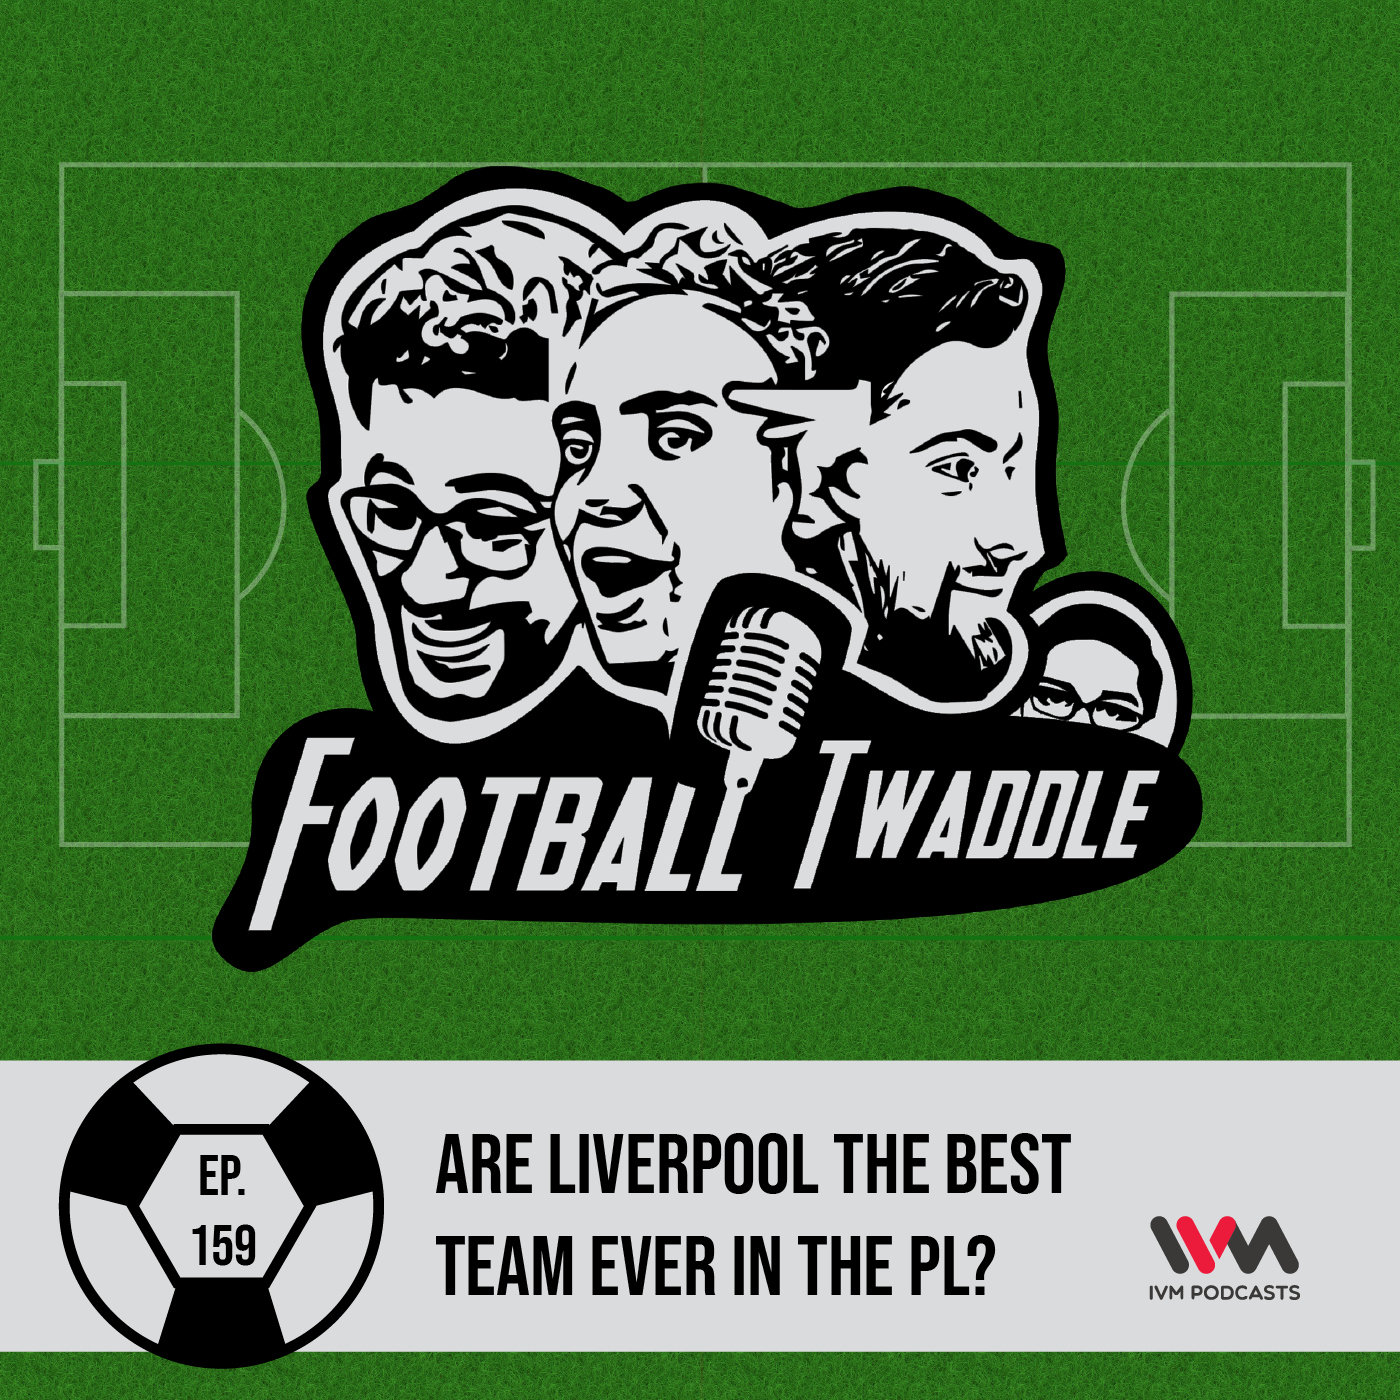 Are Liverpool the best team ever in the PL?